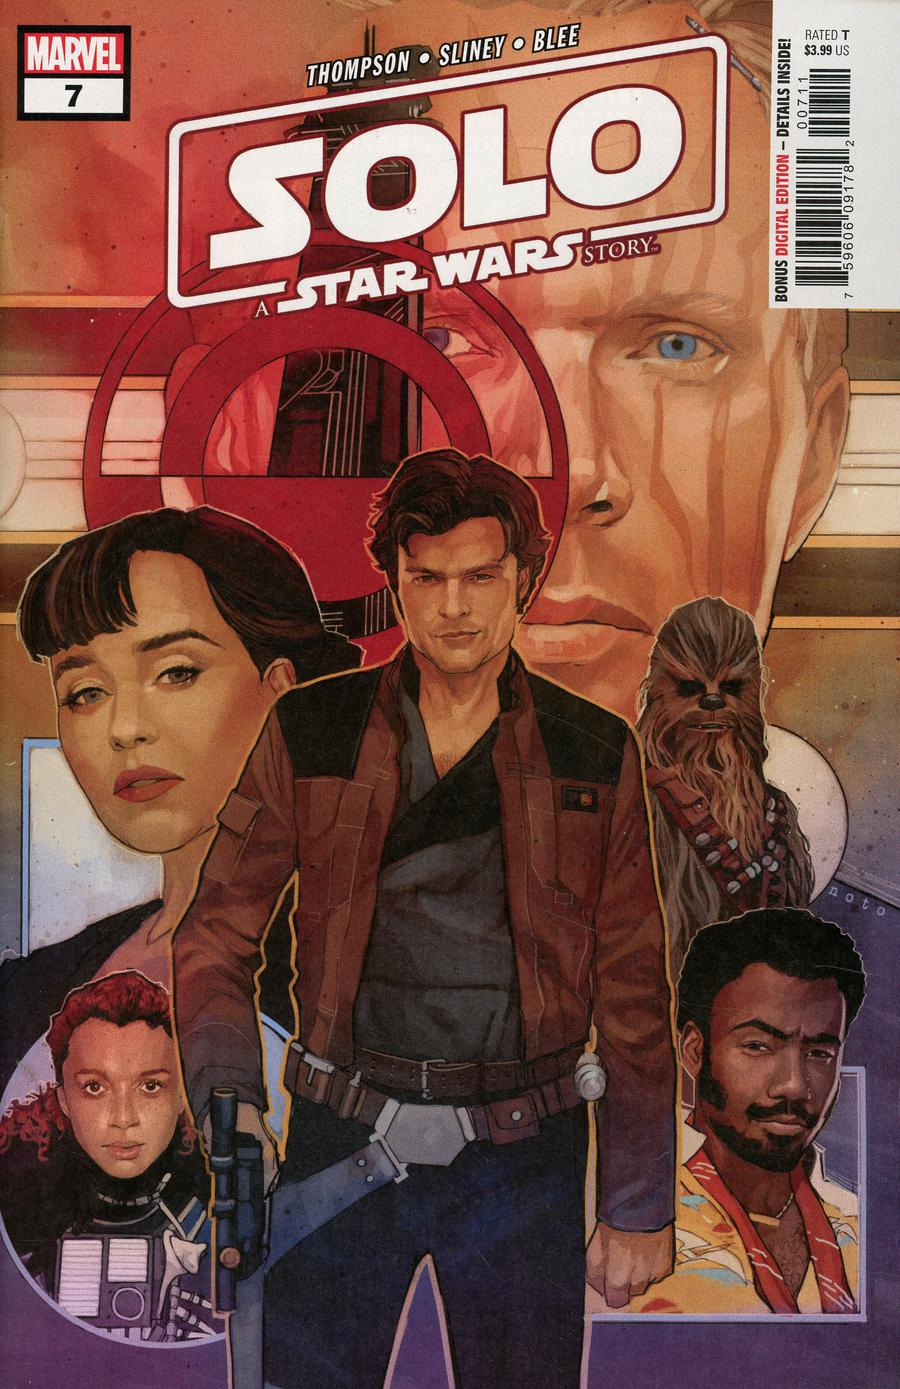 Solo A Star Wars Story Adaptation #7